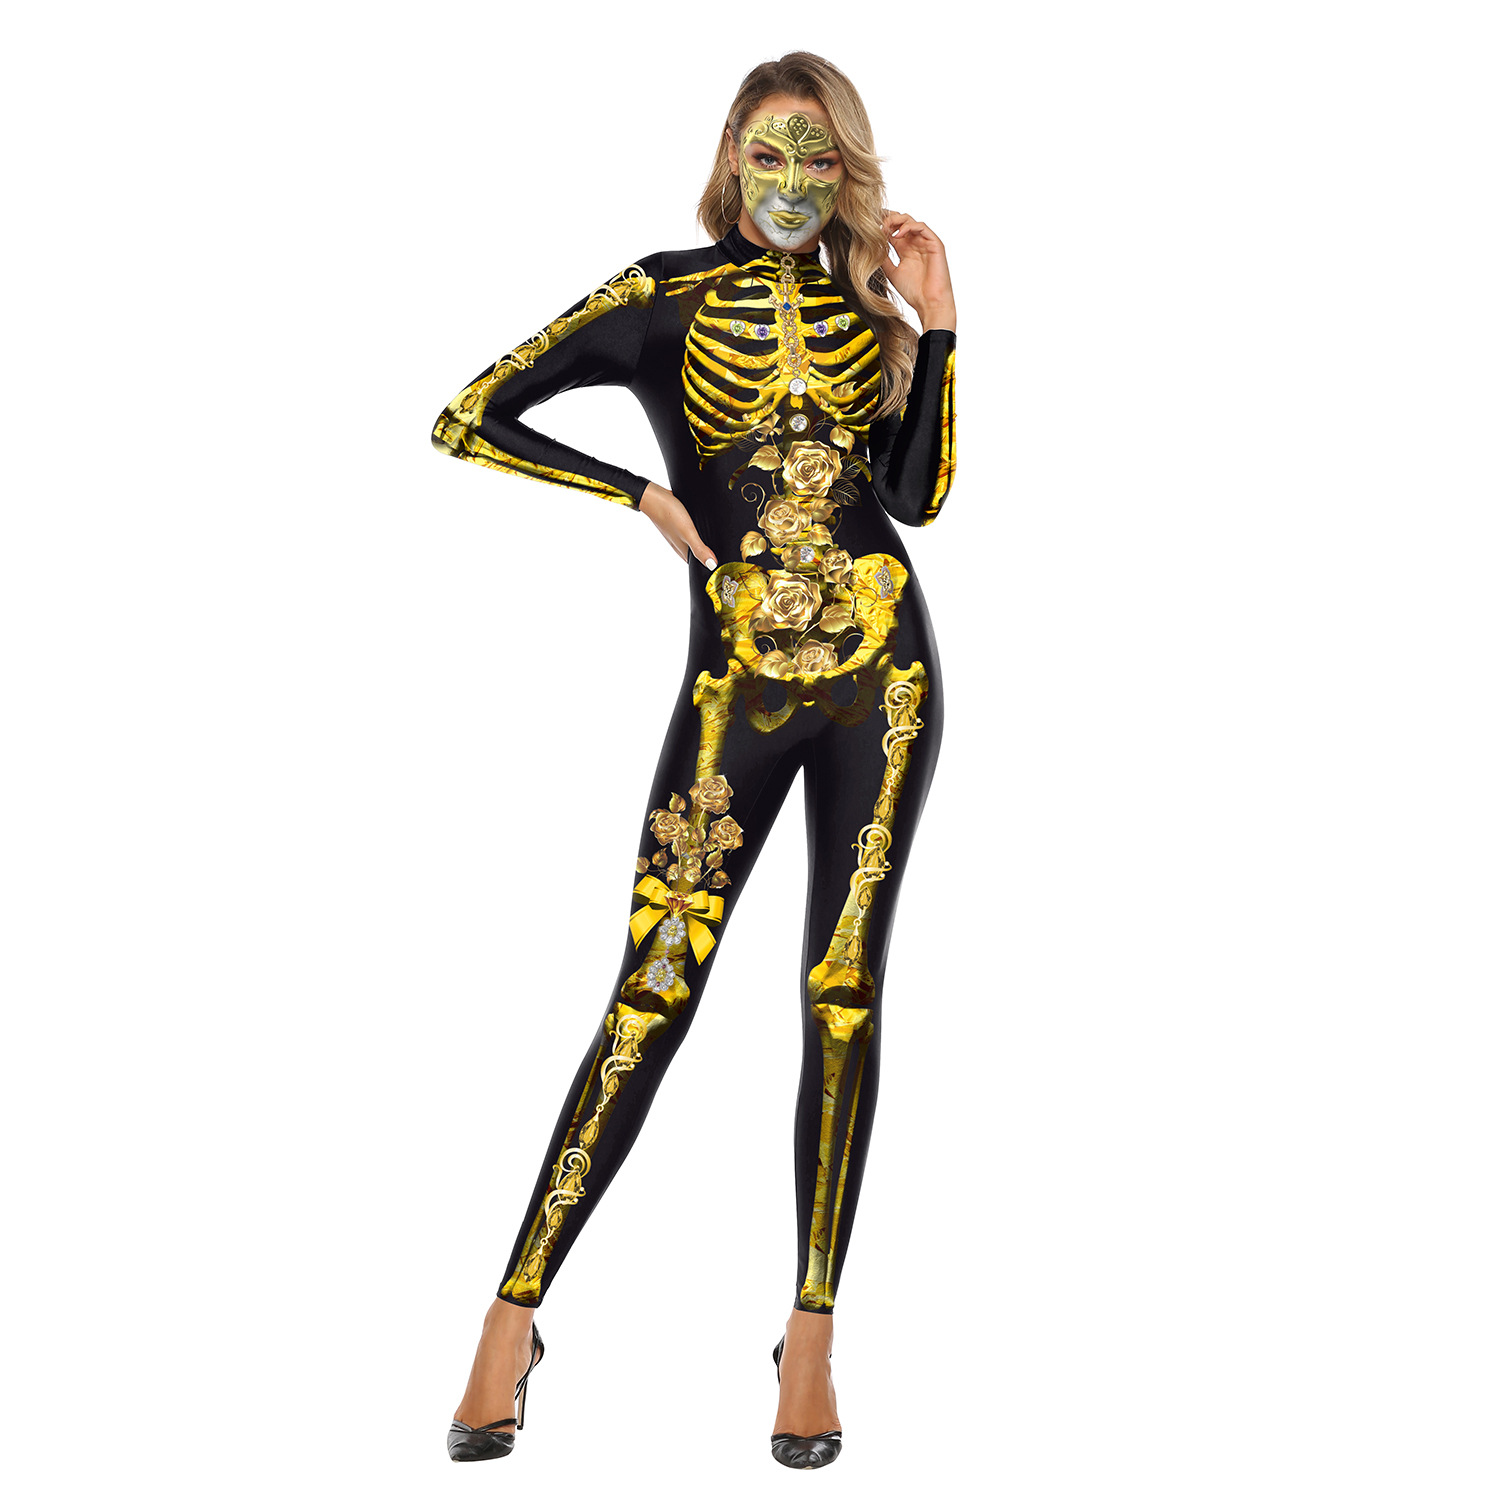 Female Skeleton Printing Jumpsuits Scary Cosplaying for Halloween Festival  WB142-001_M